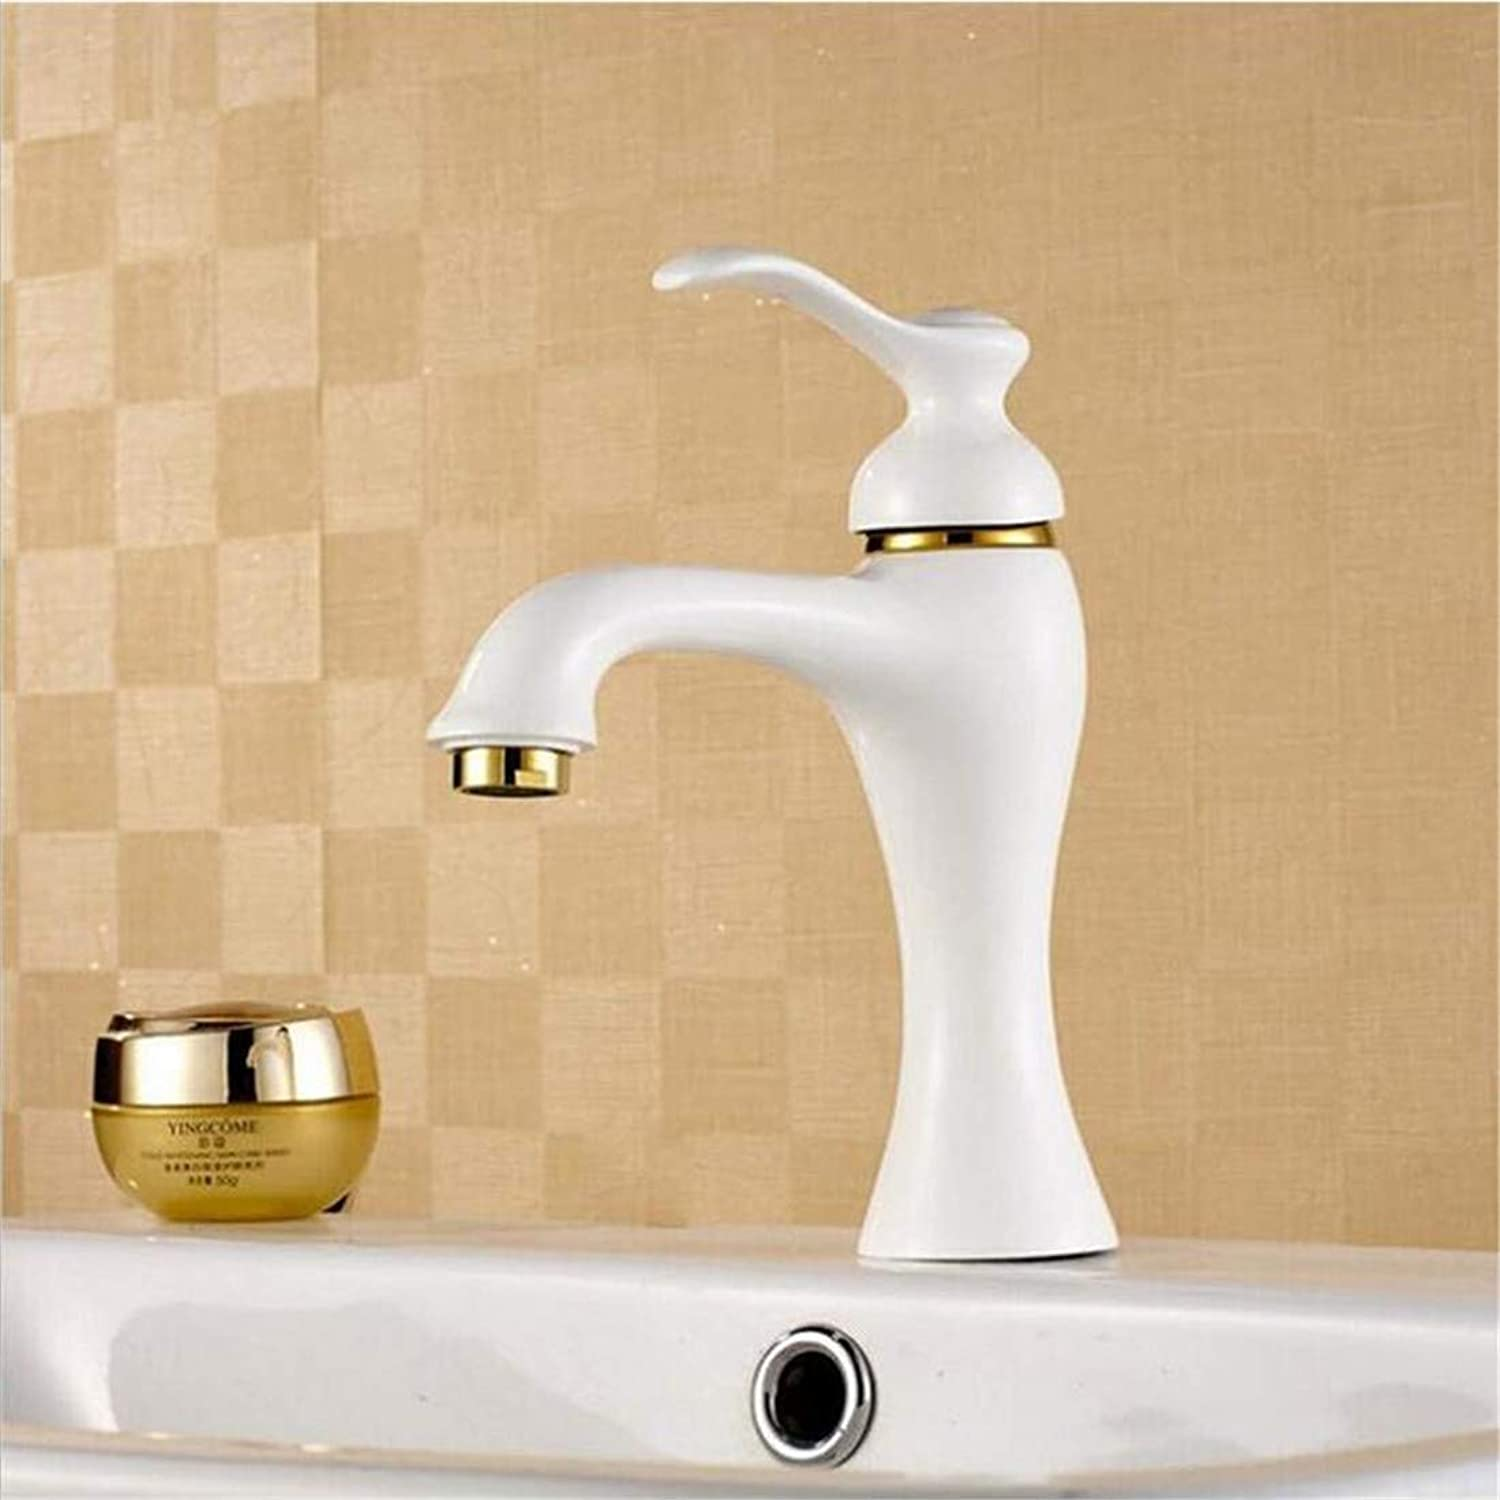 Stainless Steel Vintage Brassbathroom Products Bathroom Sets Copper Faucet Supply Basin Faucet Paint White Leader